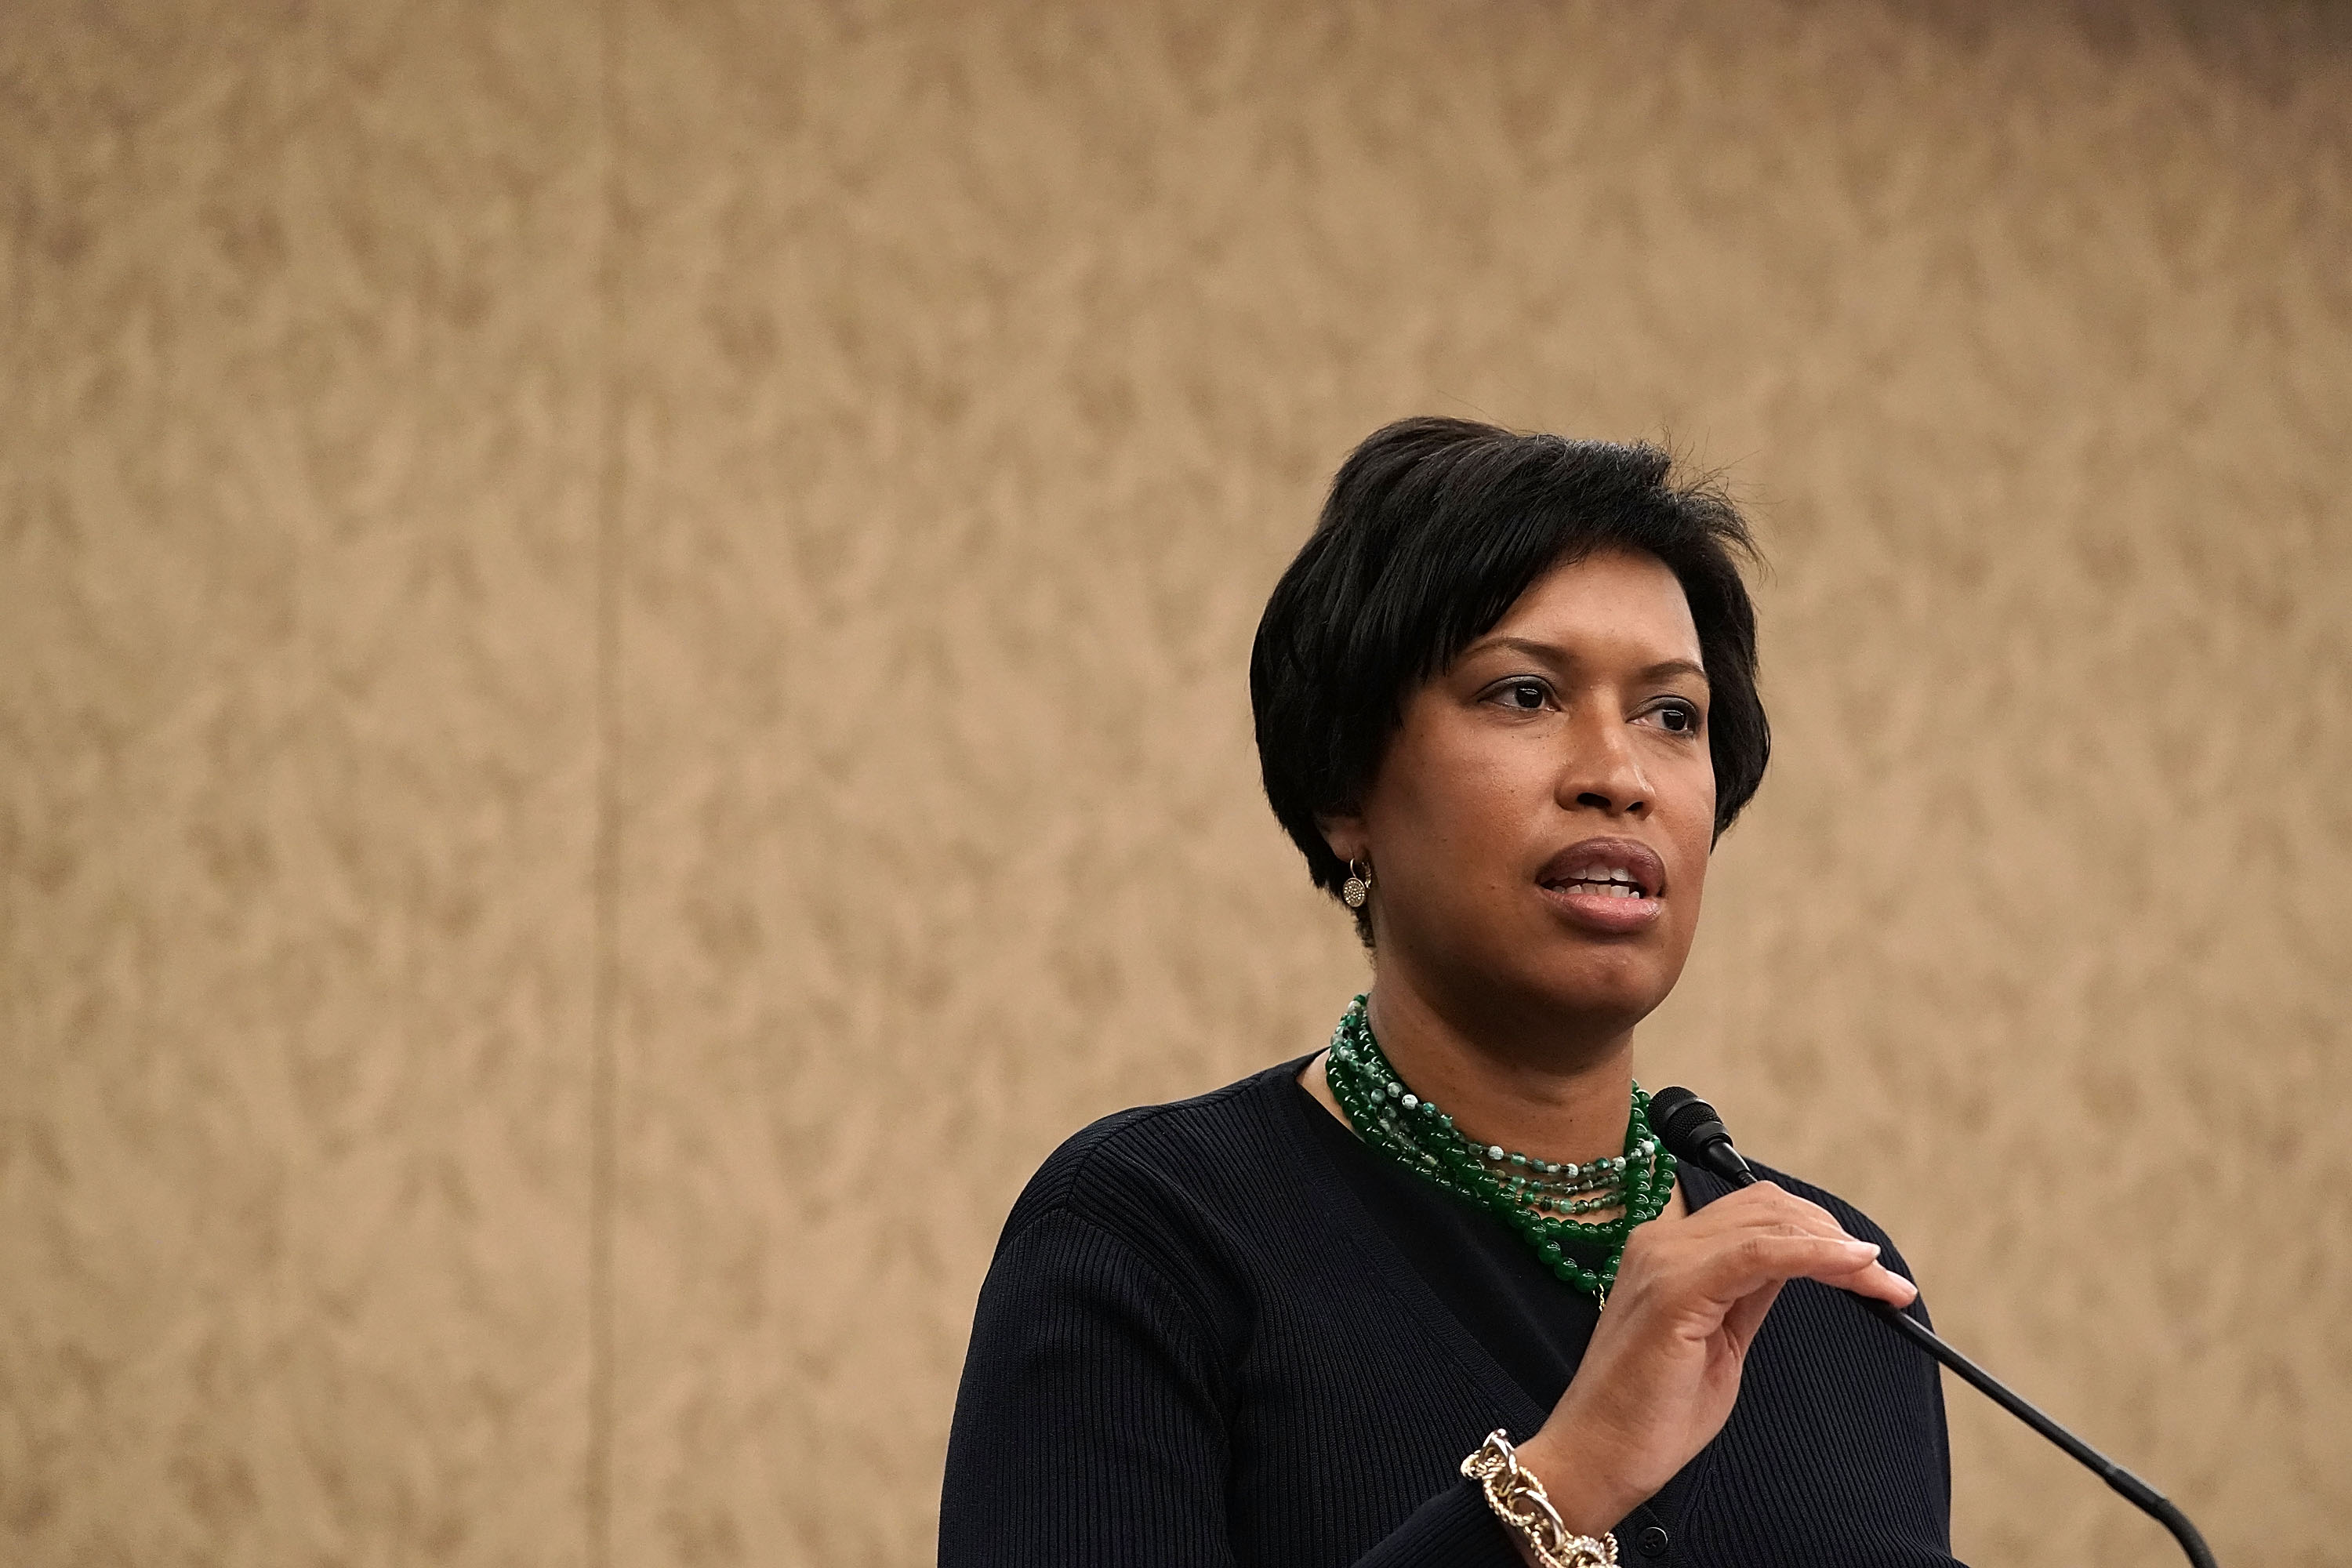 DC mayor says she's 'shocked' and 'outraged' at treatment of peaceful protesters at White House